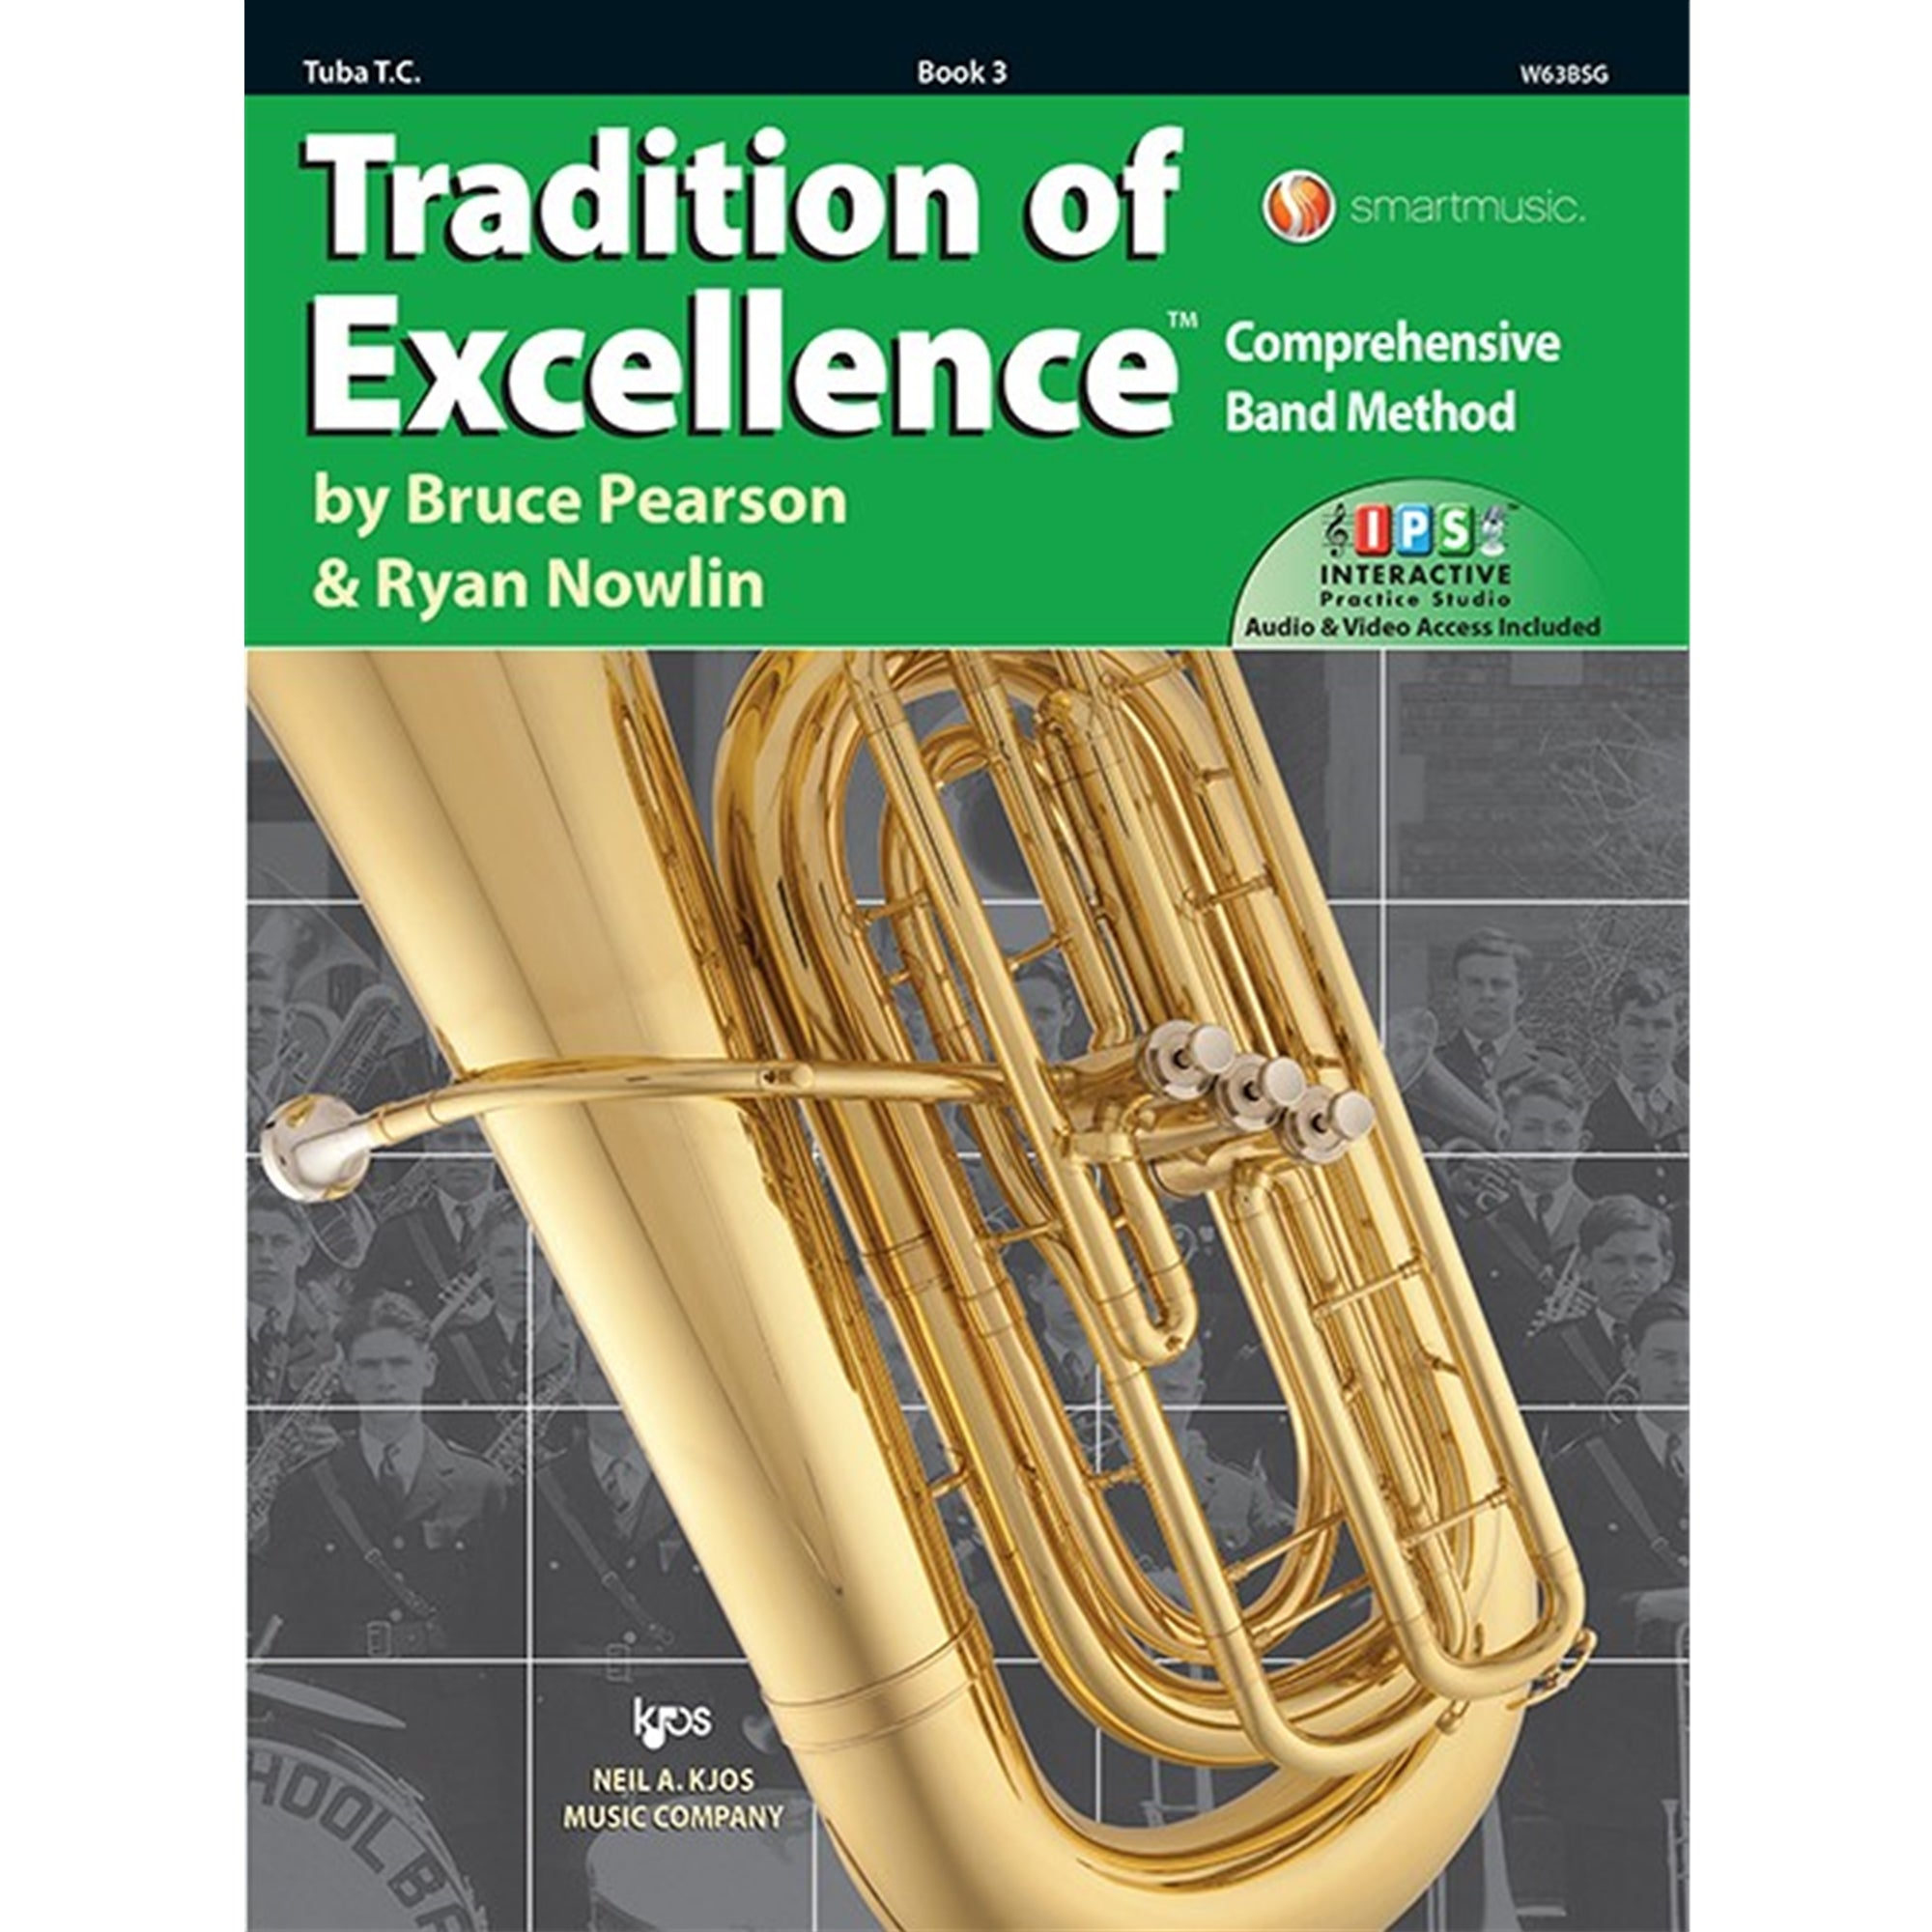 KJOS W63BSG Tradition of Excellence Tuba T.C Book 3